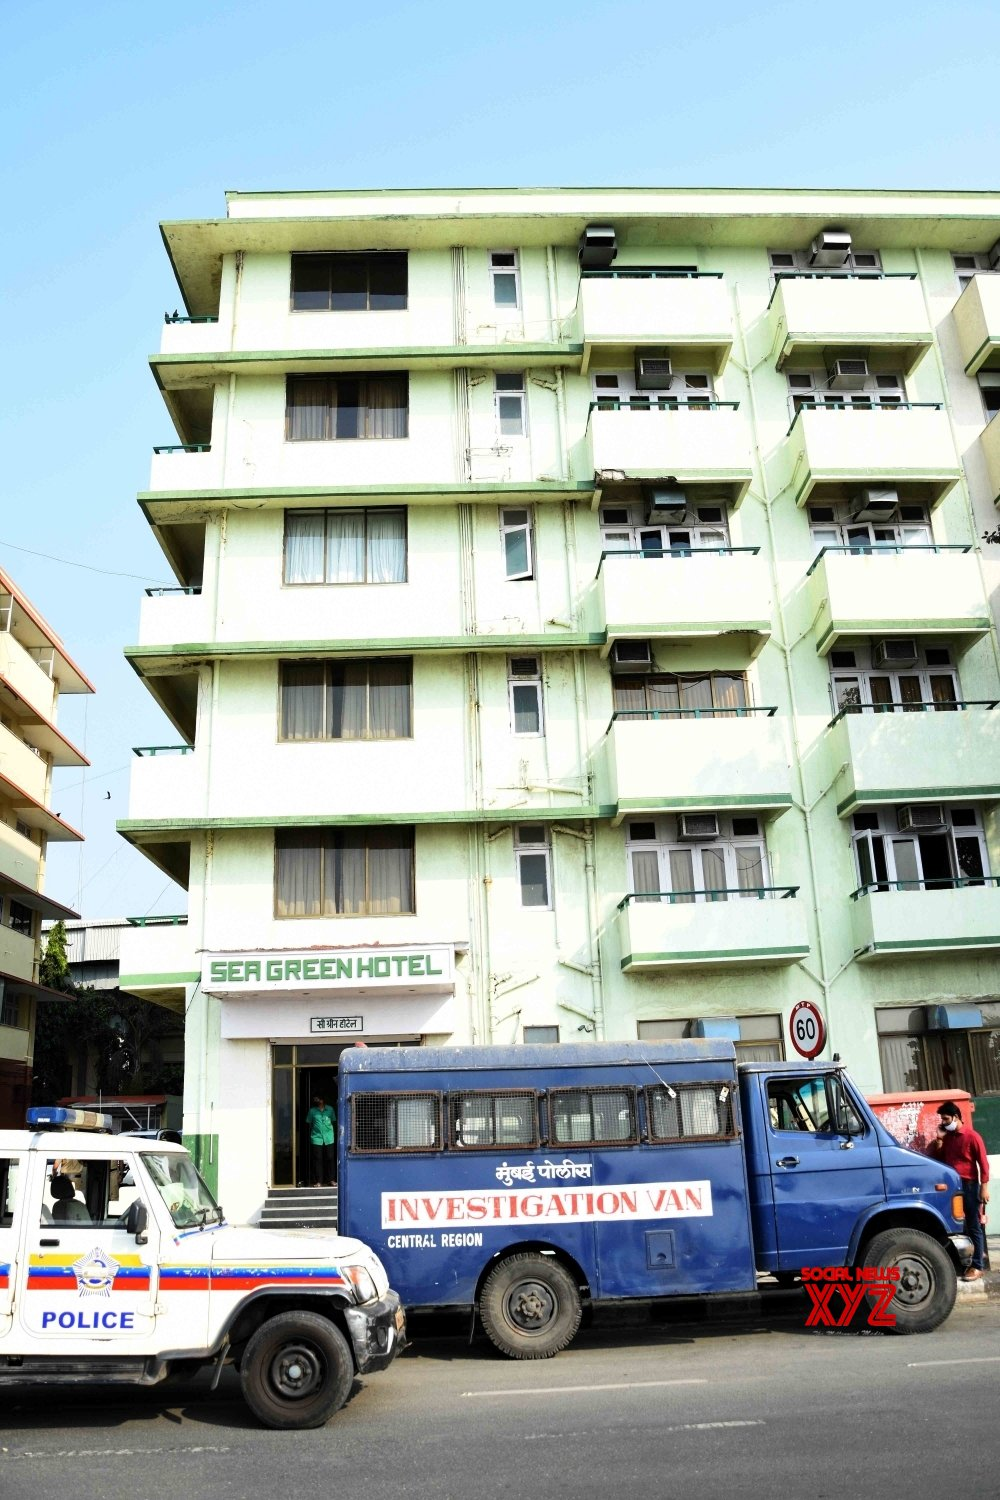 Mumbai: Exterior view of Sea Green South Hotel where Mohan Delkar, a Lok Sabha member from Dadra and Nagar Haveli allegedly died by suicide #Gallery